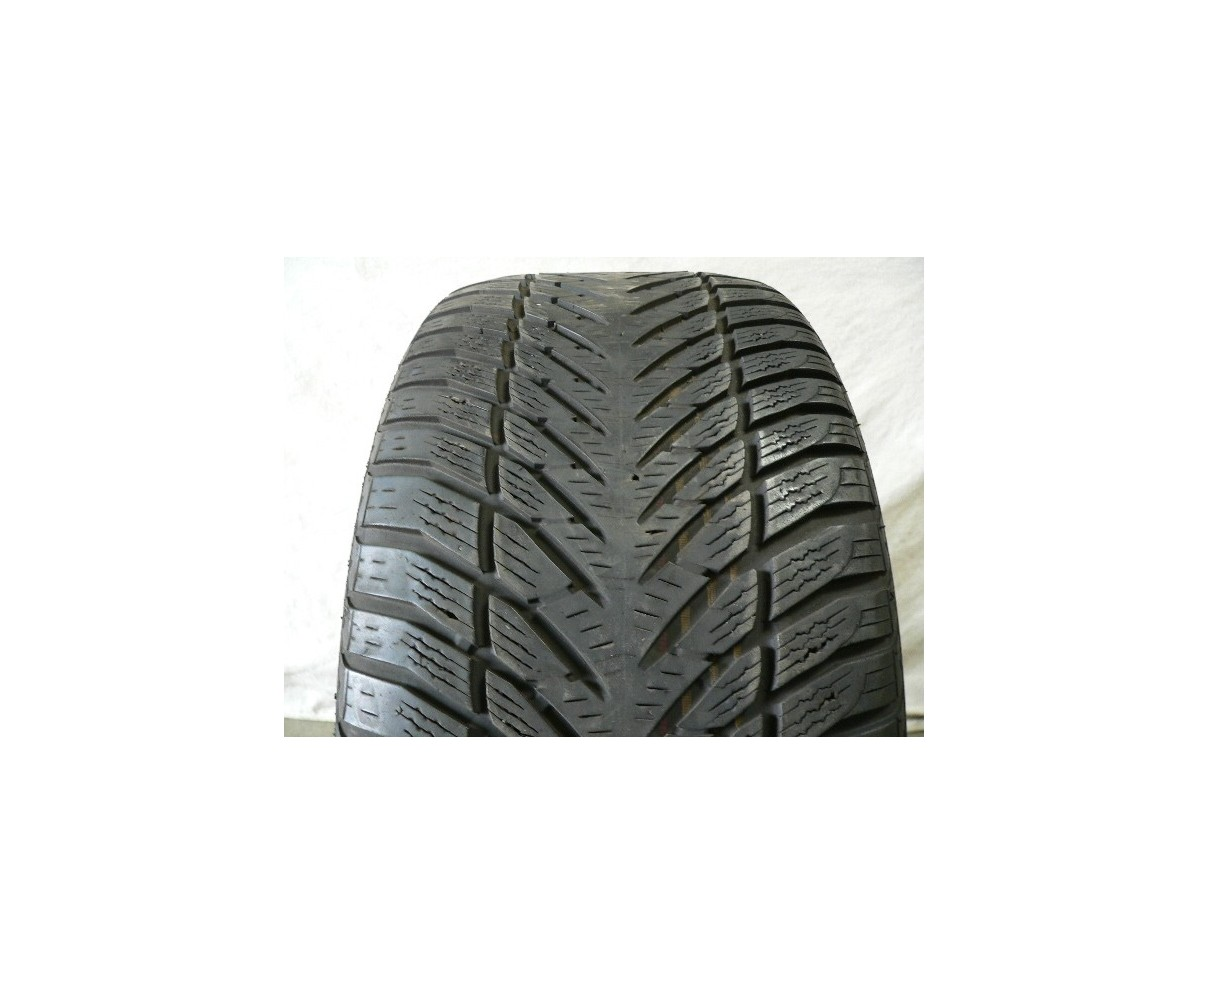 1 used tire 225 45 17 Goodyear Eagle Ultra Grip Run Flat 80% life